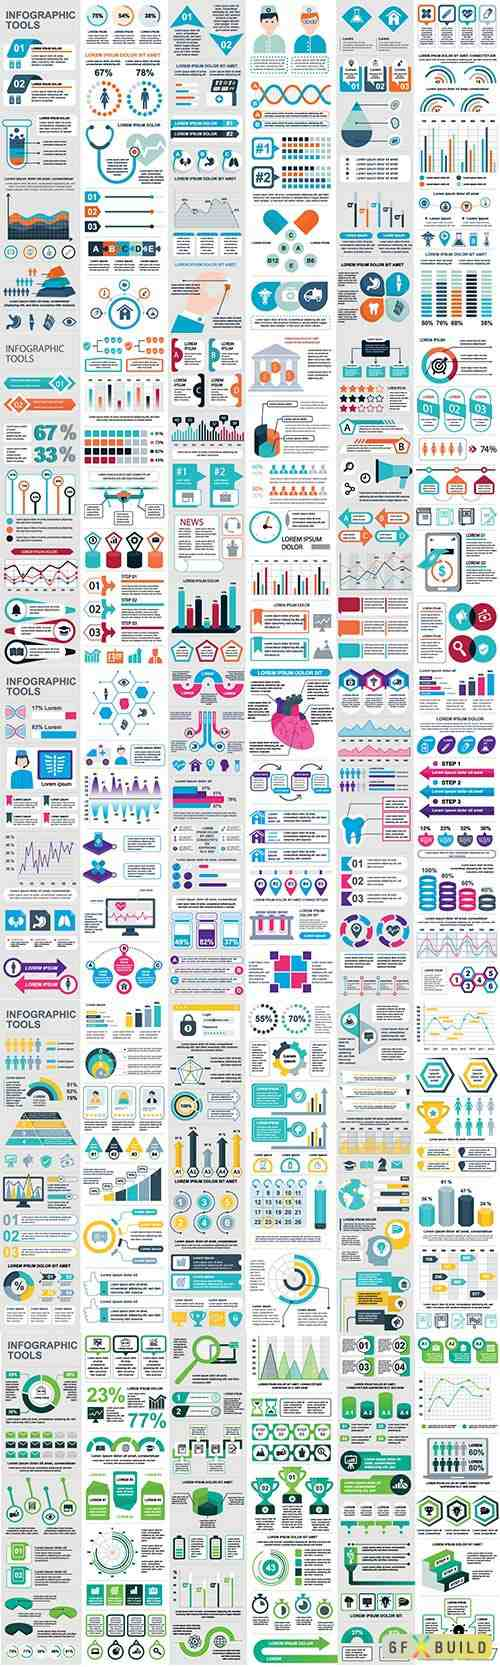 Infographic elements data visualization vector # 3